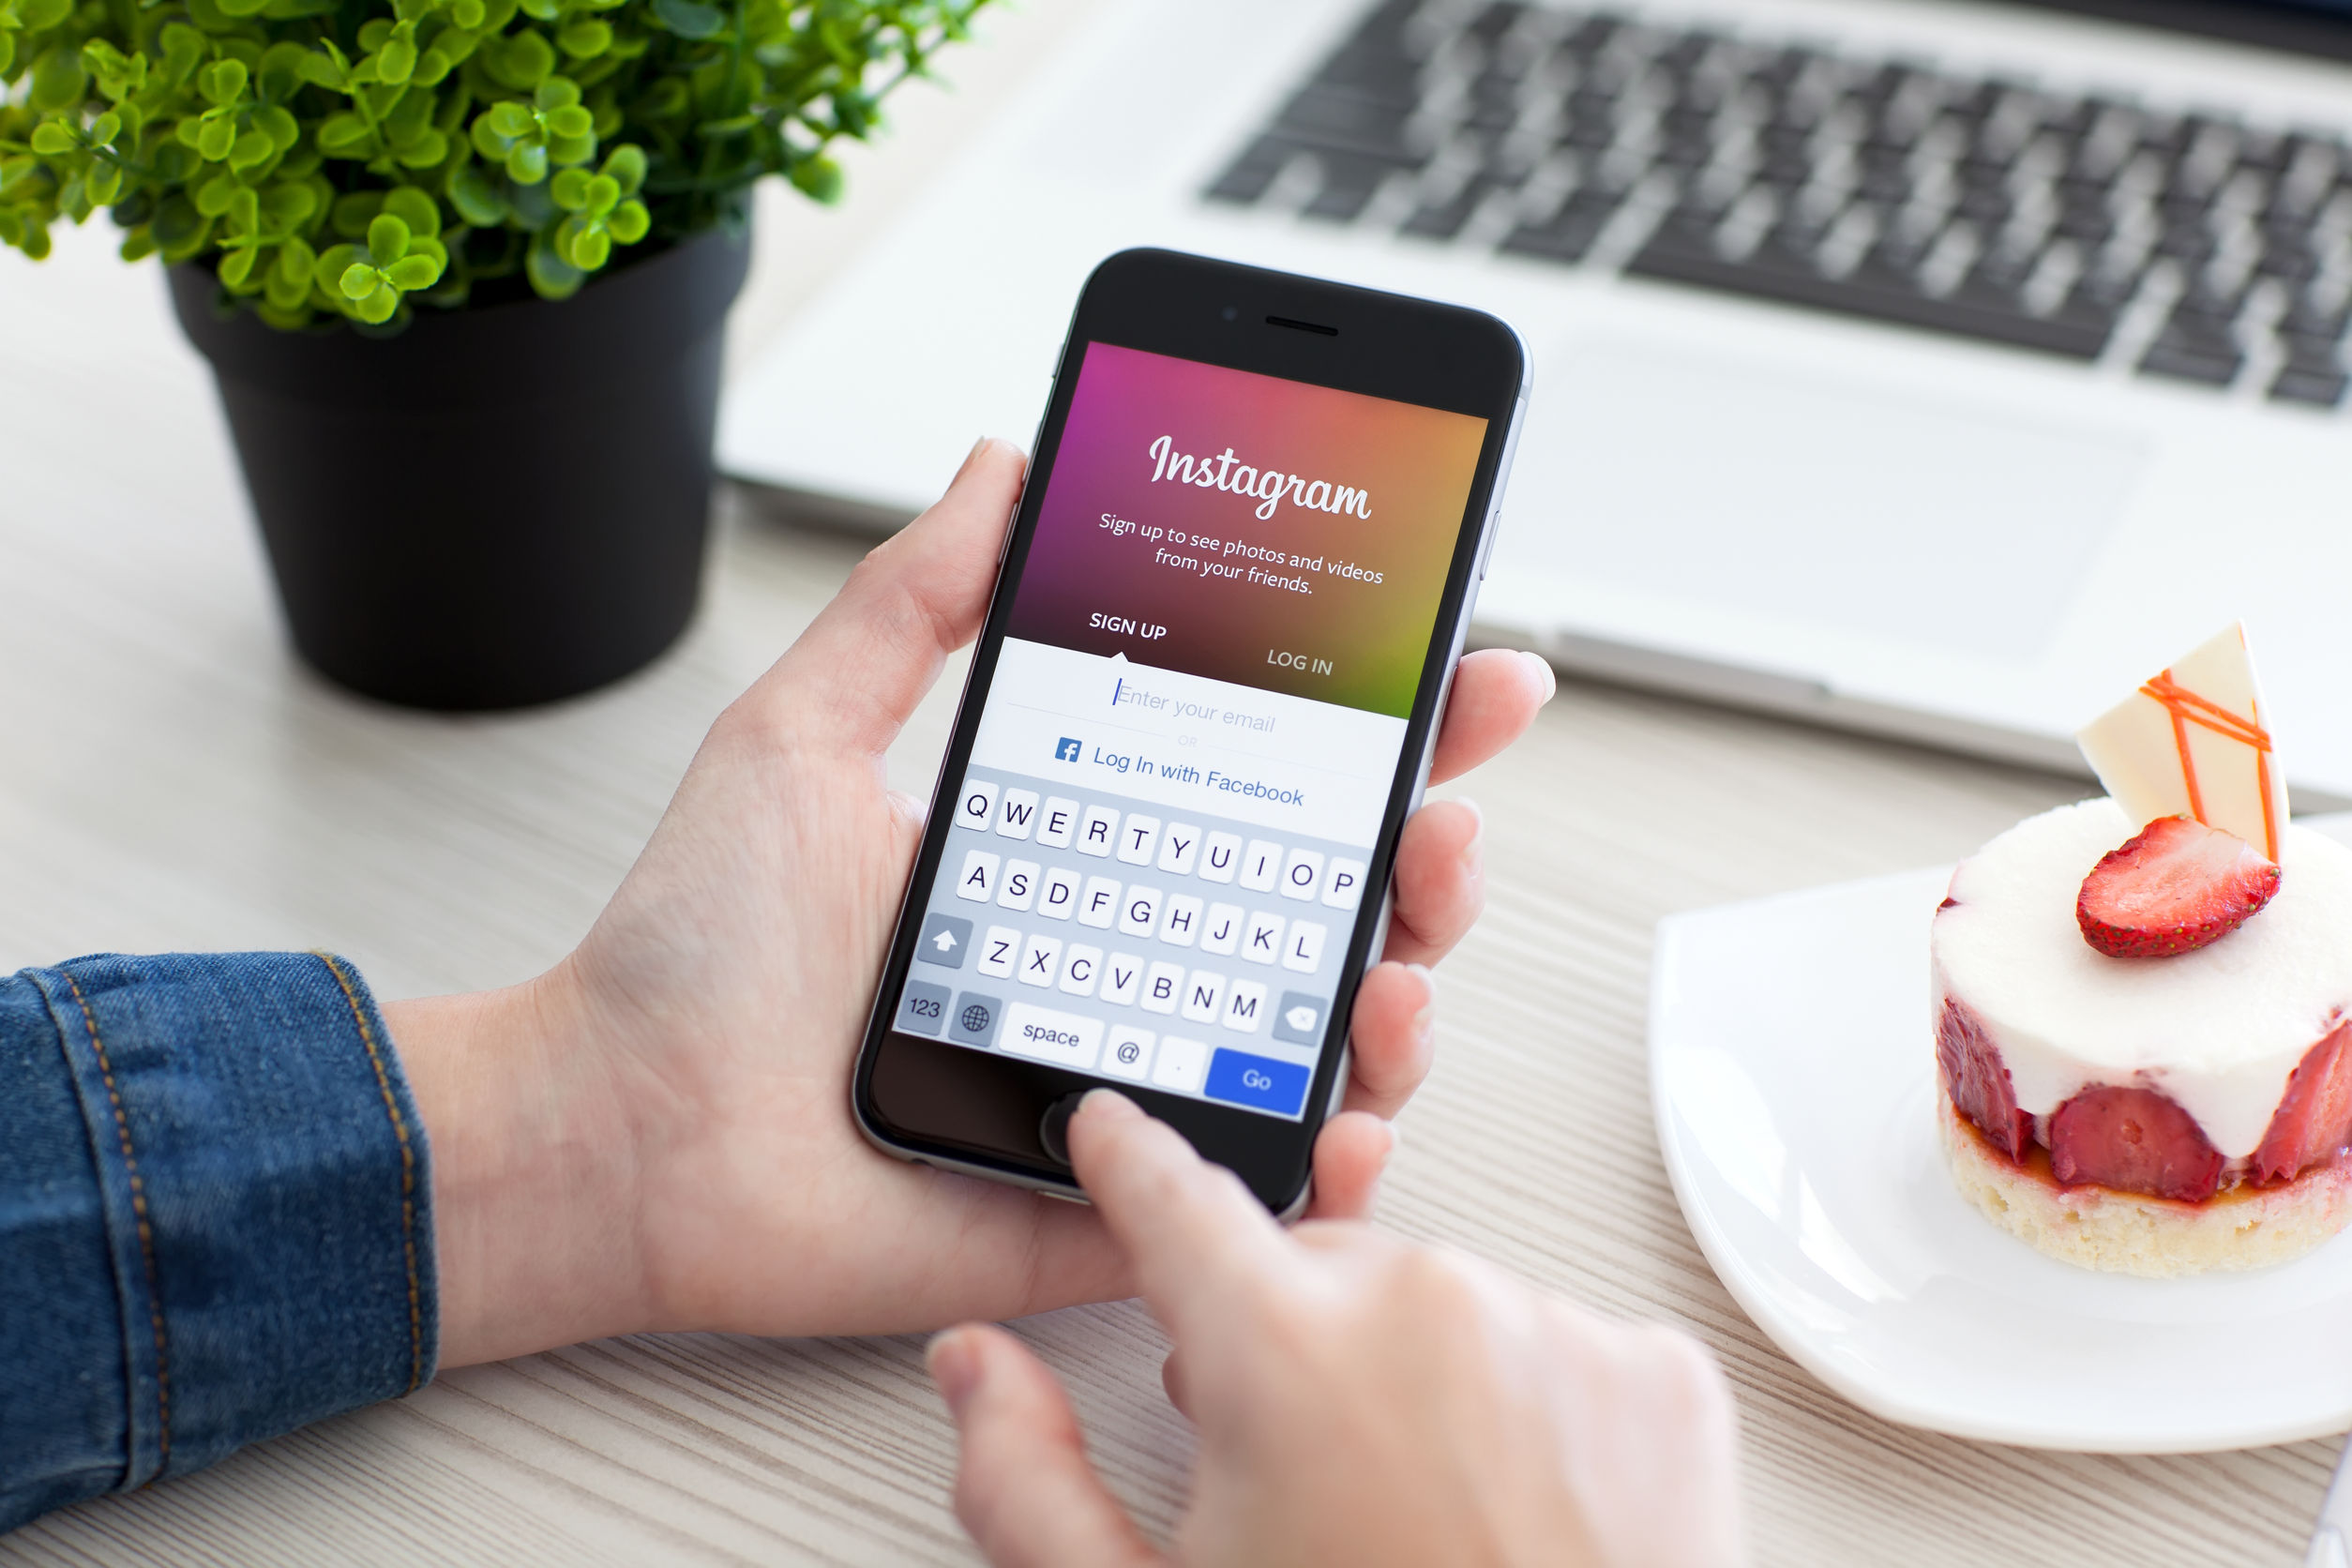 Instagram Reaches 1 Billion Monthly Users